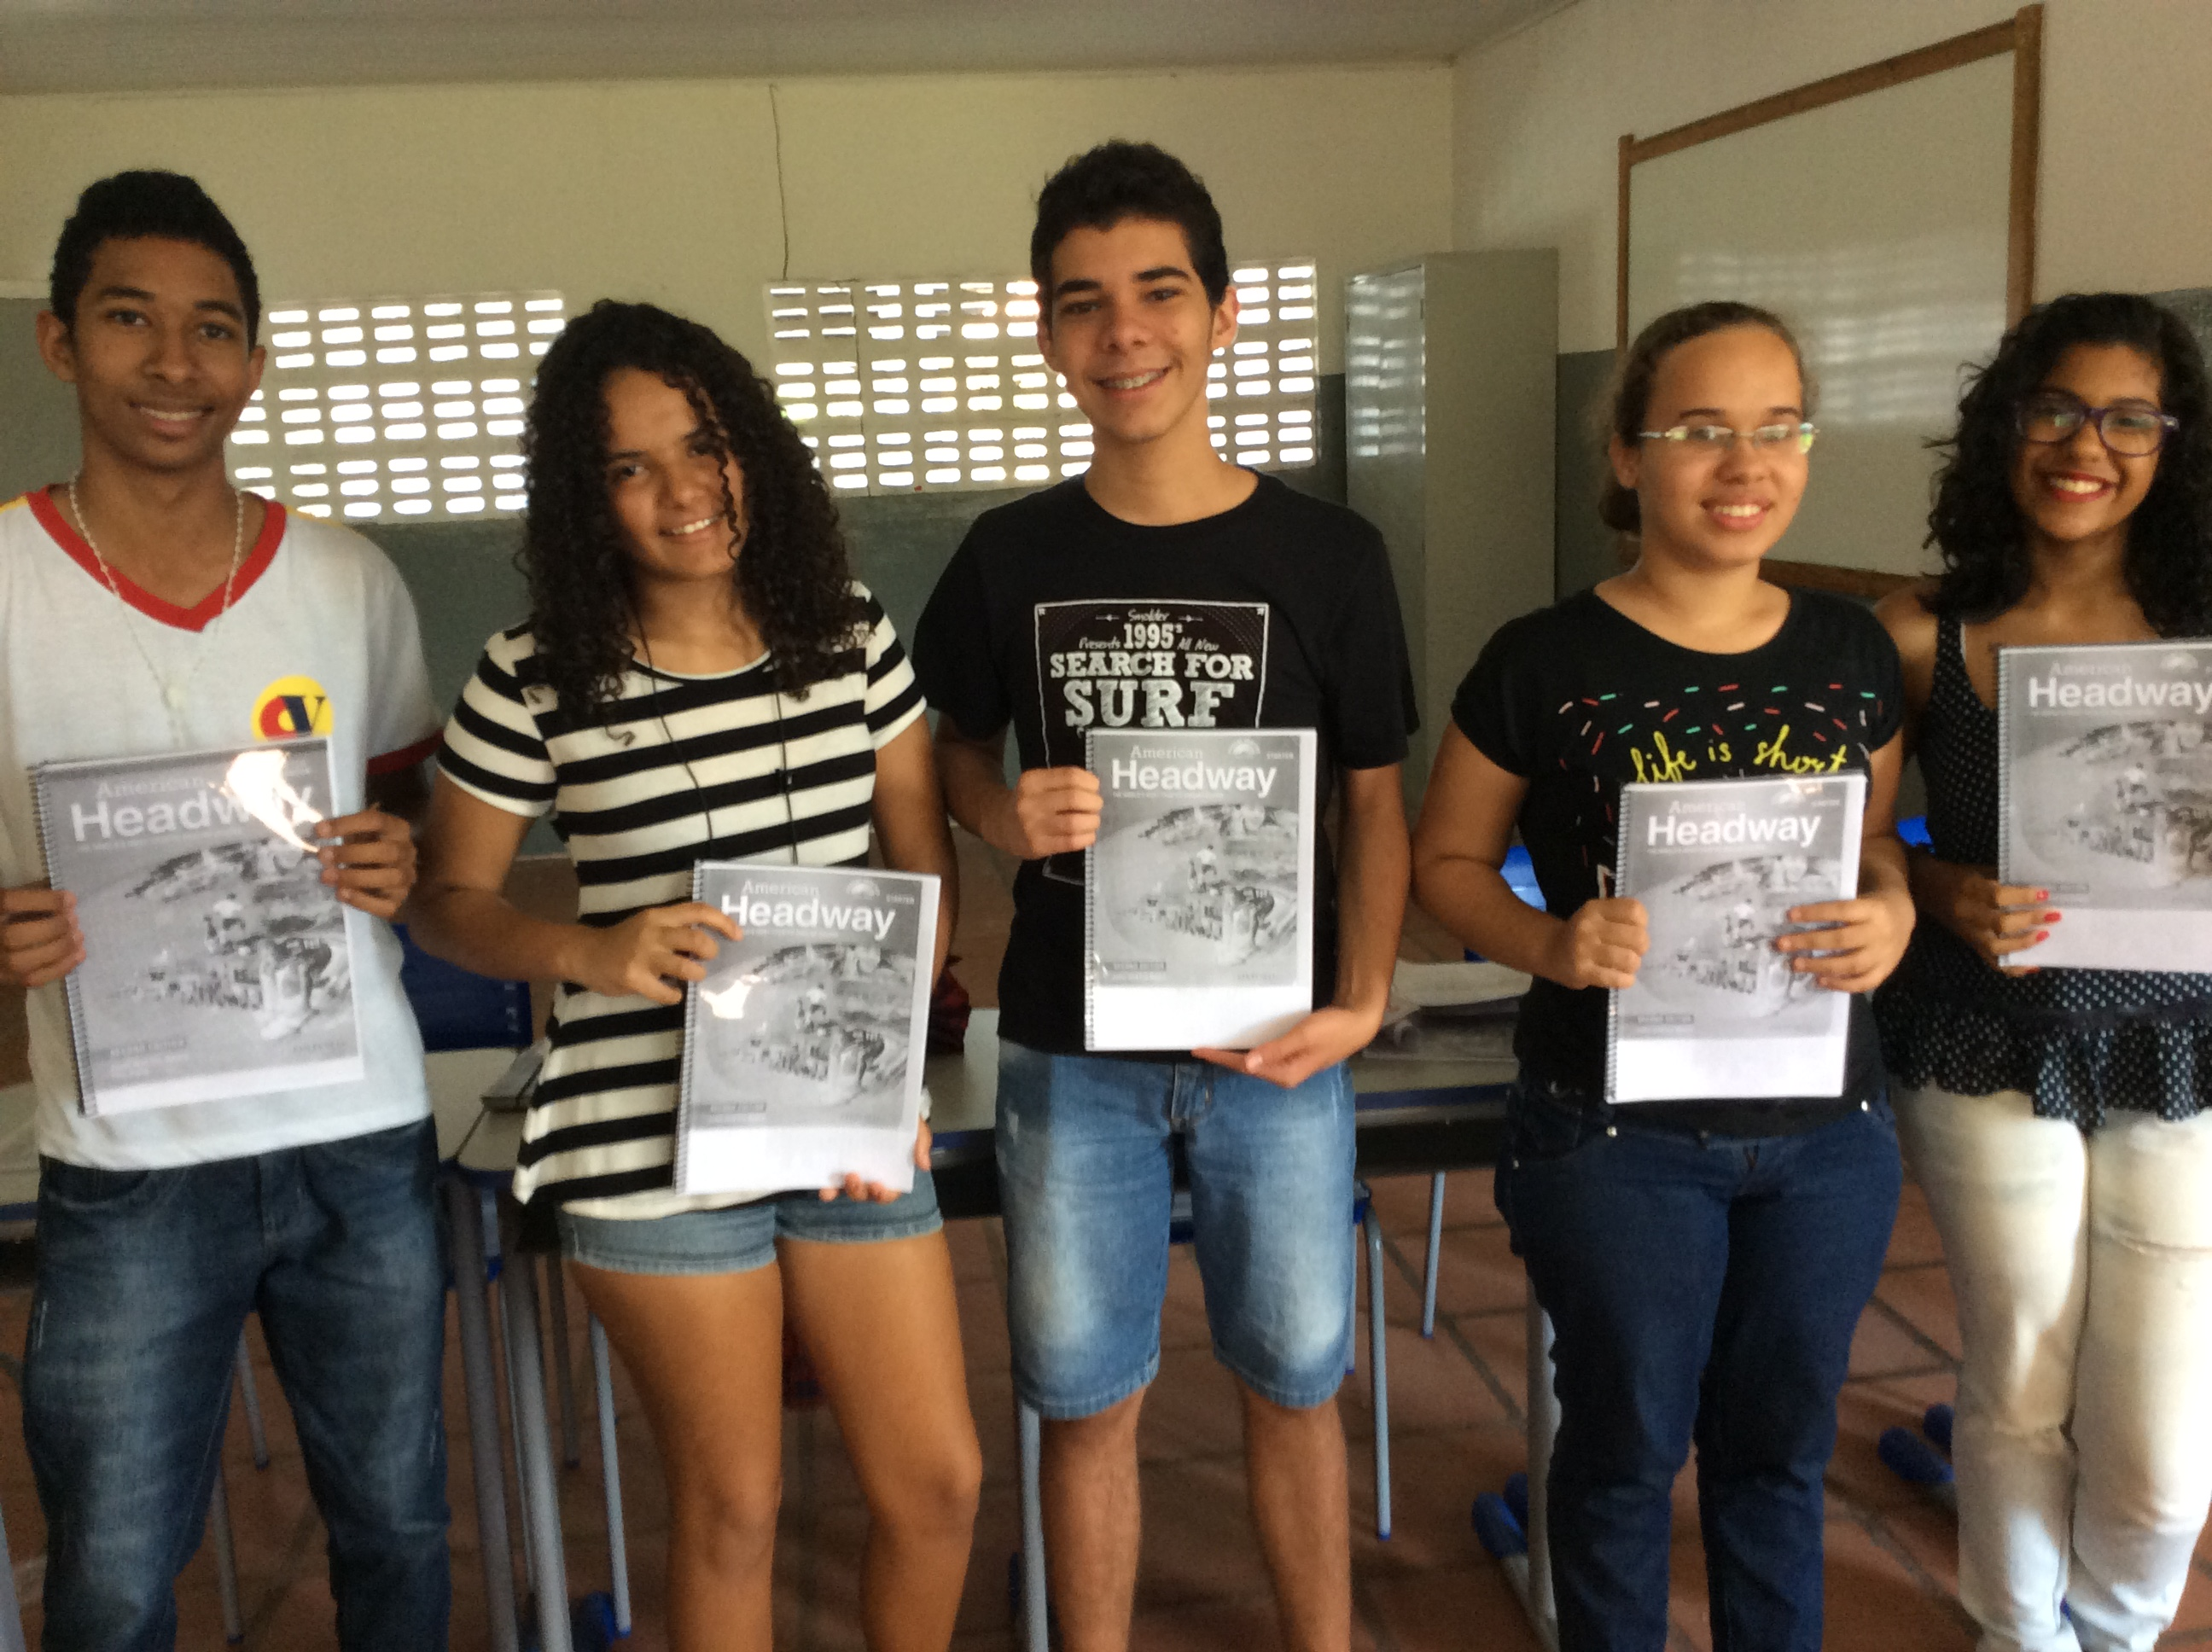 The middle school English students, displaying their textbooks